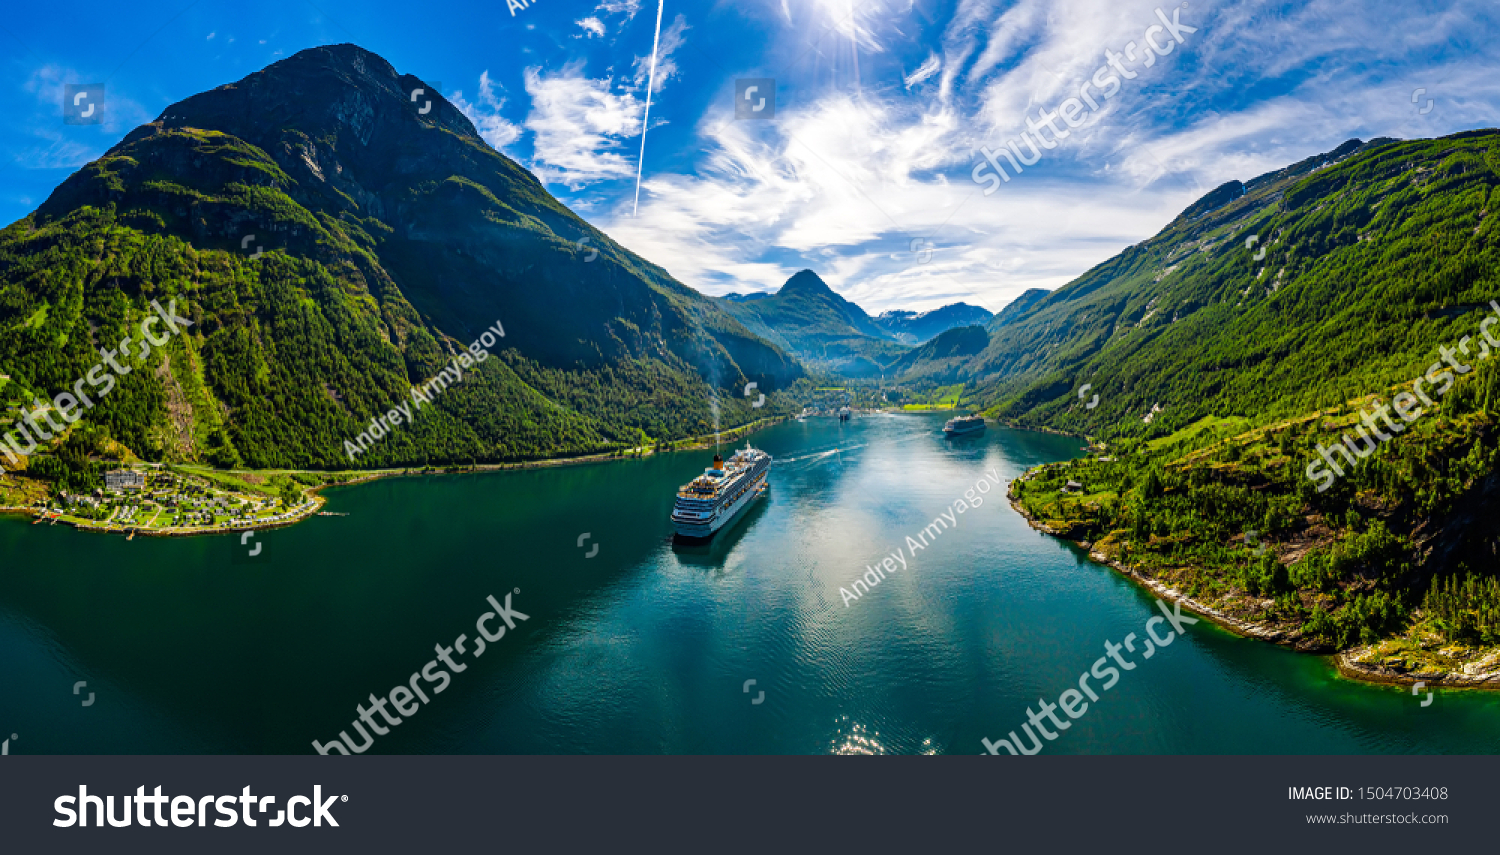 Geiranger fjord, Beautiful Nature Norway. The fjord is one of Norway's most visited tourist sites. Geiranger Fjord, a UNESCO World Heritage Site #1504703408